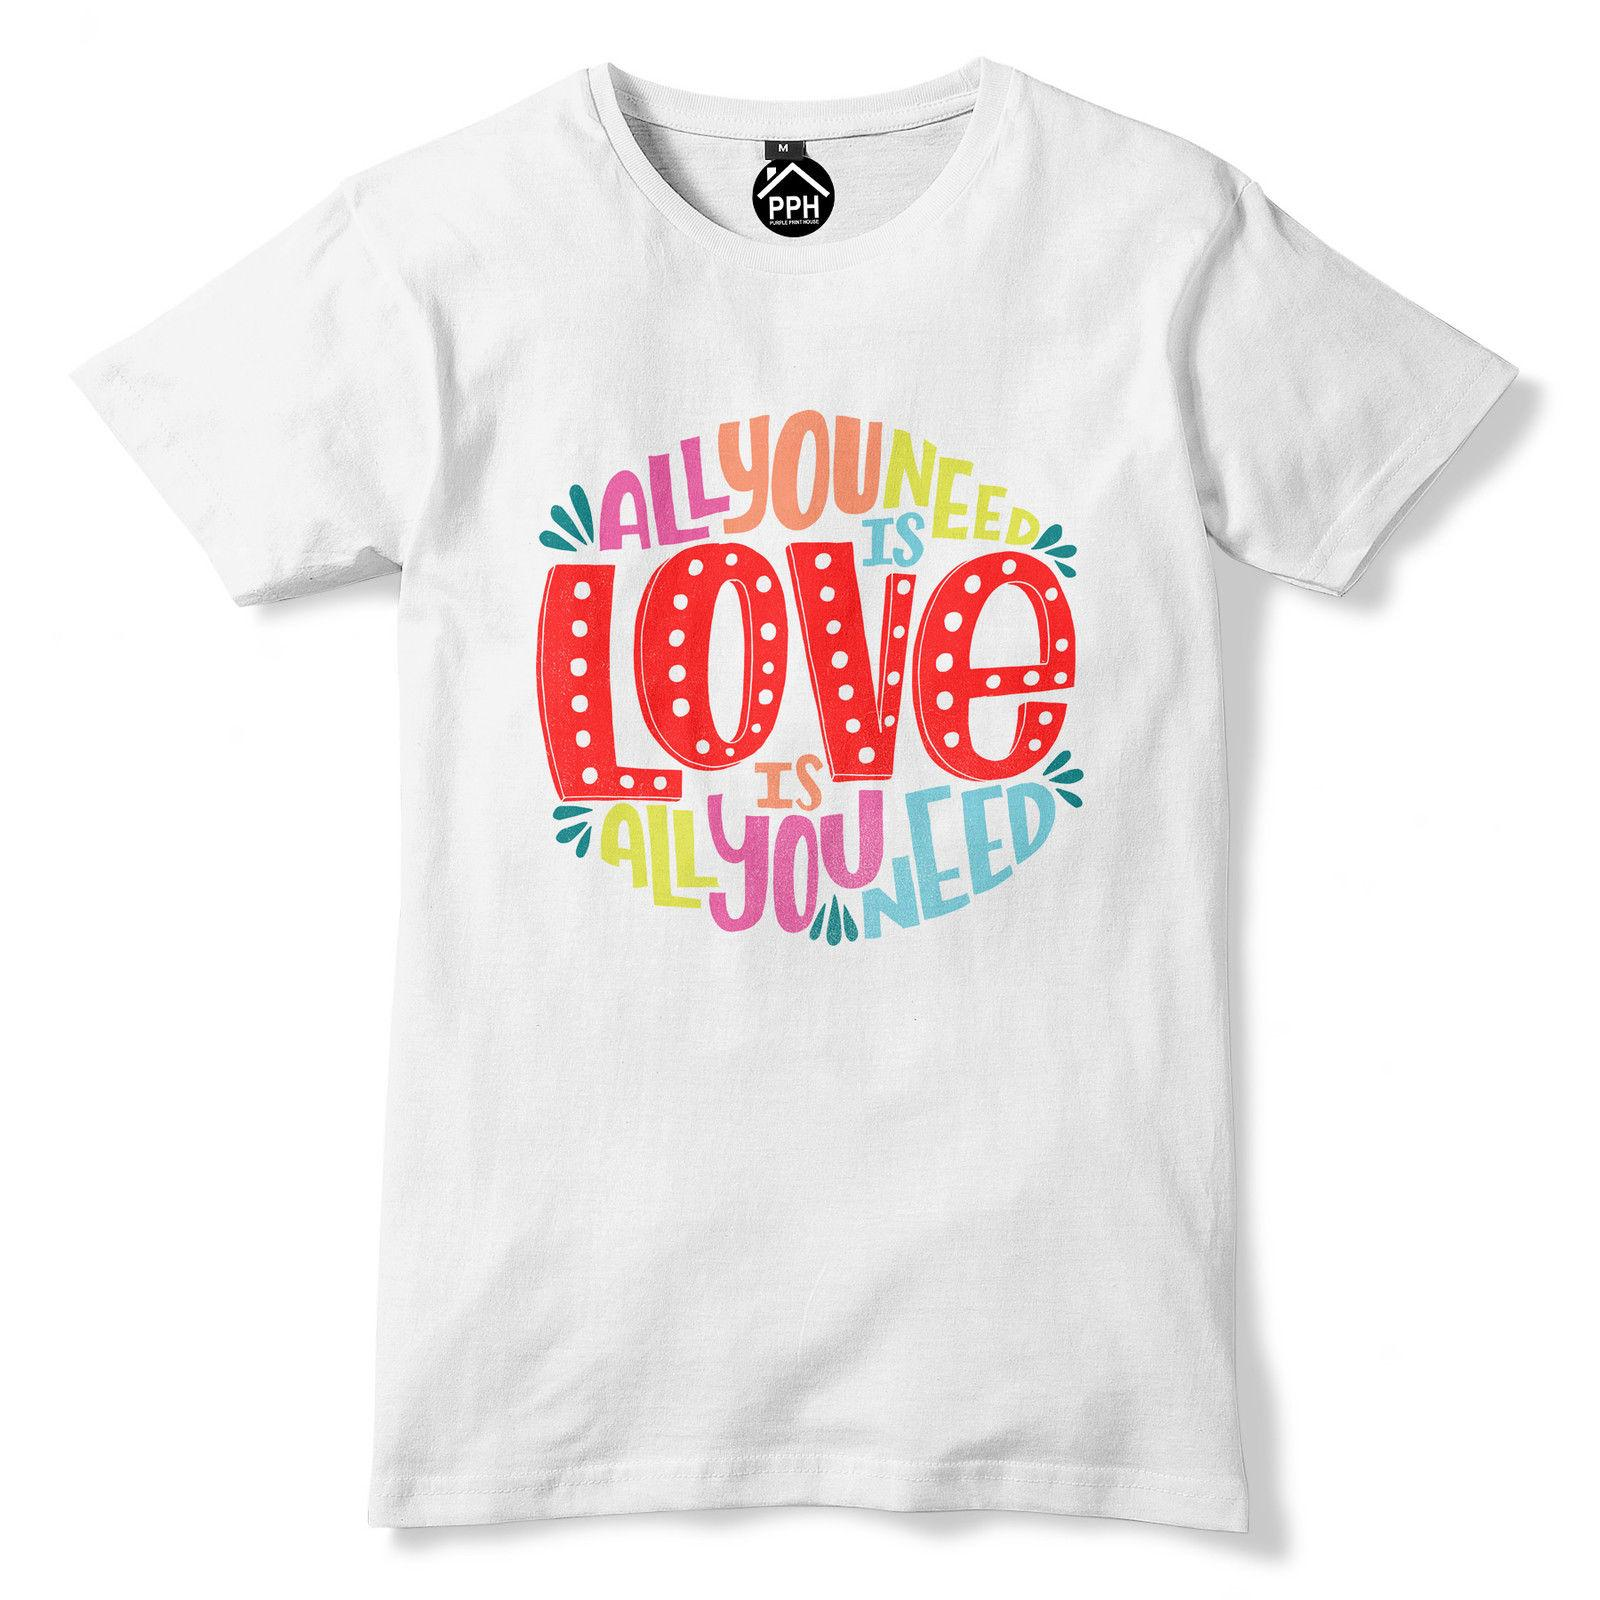 4208aecf All You Need Is Love Music T Shirt Bible Quote Song Lyric Top Mens Womens  390 T Shirt T Shirt Top Tee,Hipster O Neck Casual T Shrits Tshirts Designs  From ...